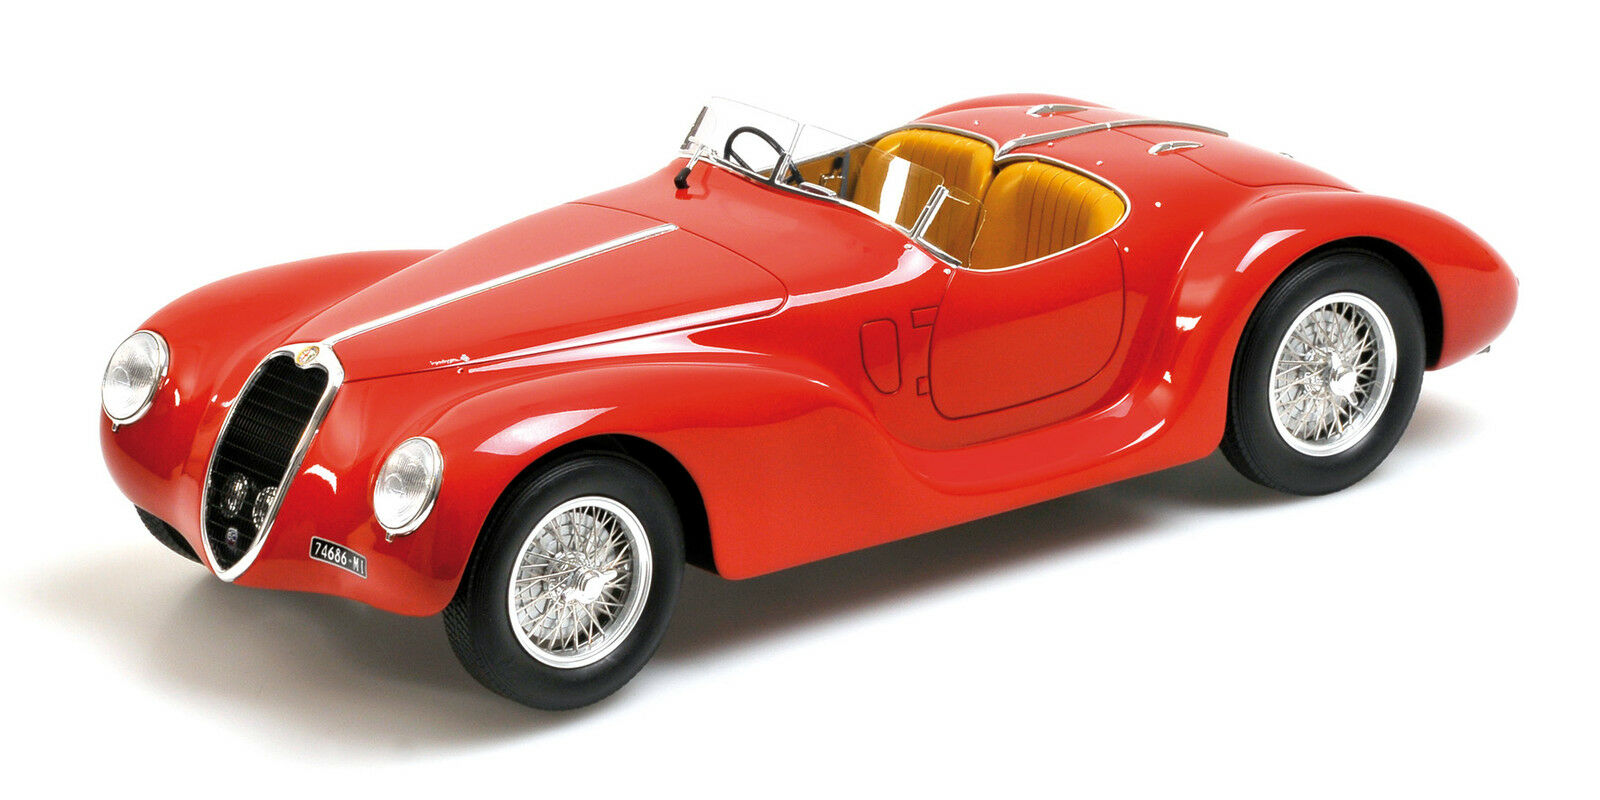 1939 Alfa Romeo Corsa 6c 2500 Ss Spider Rojo  Ltd 999pc Minichamps 107230